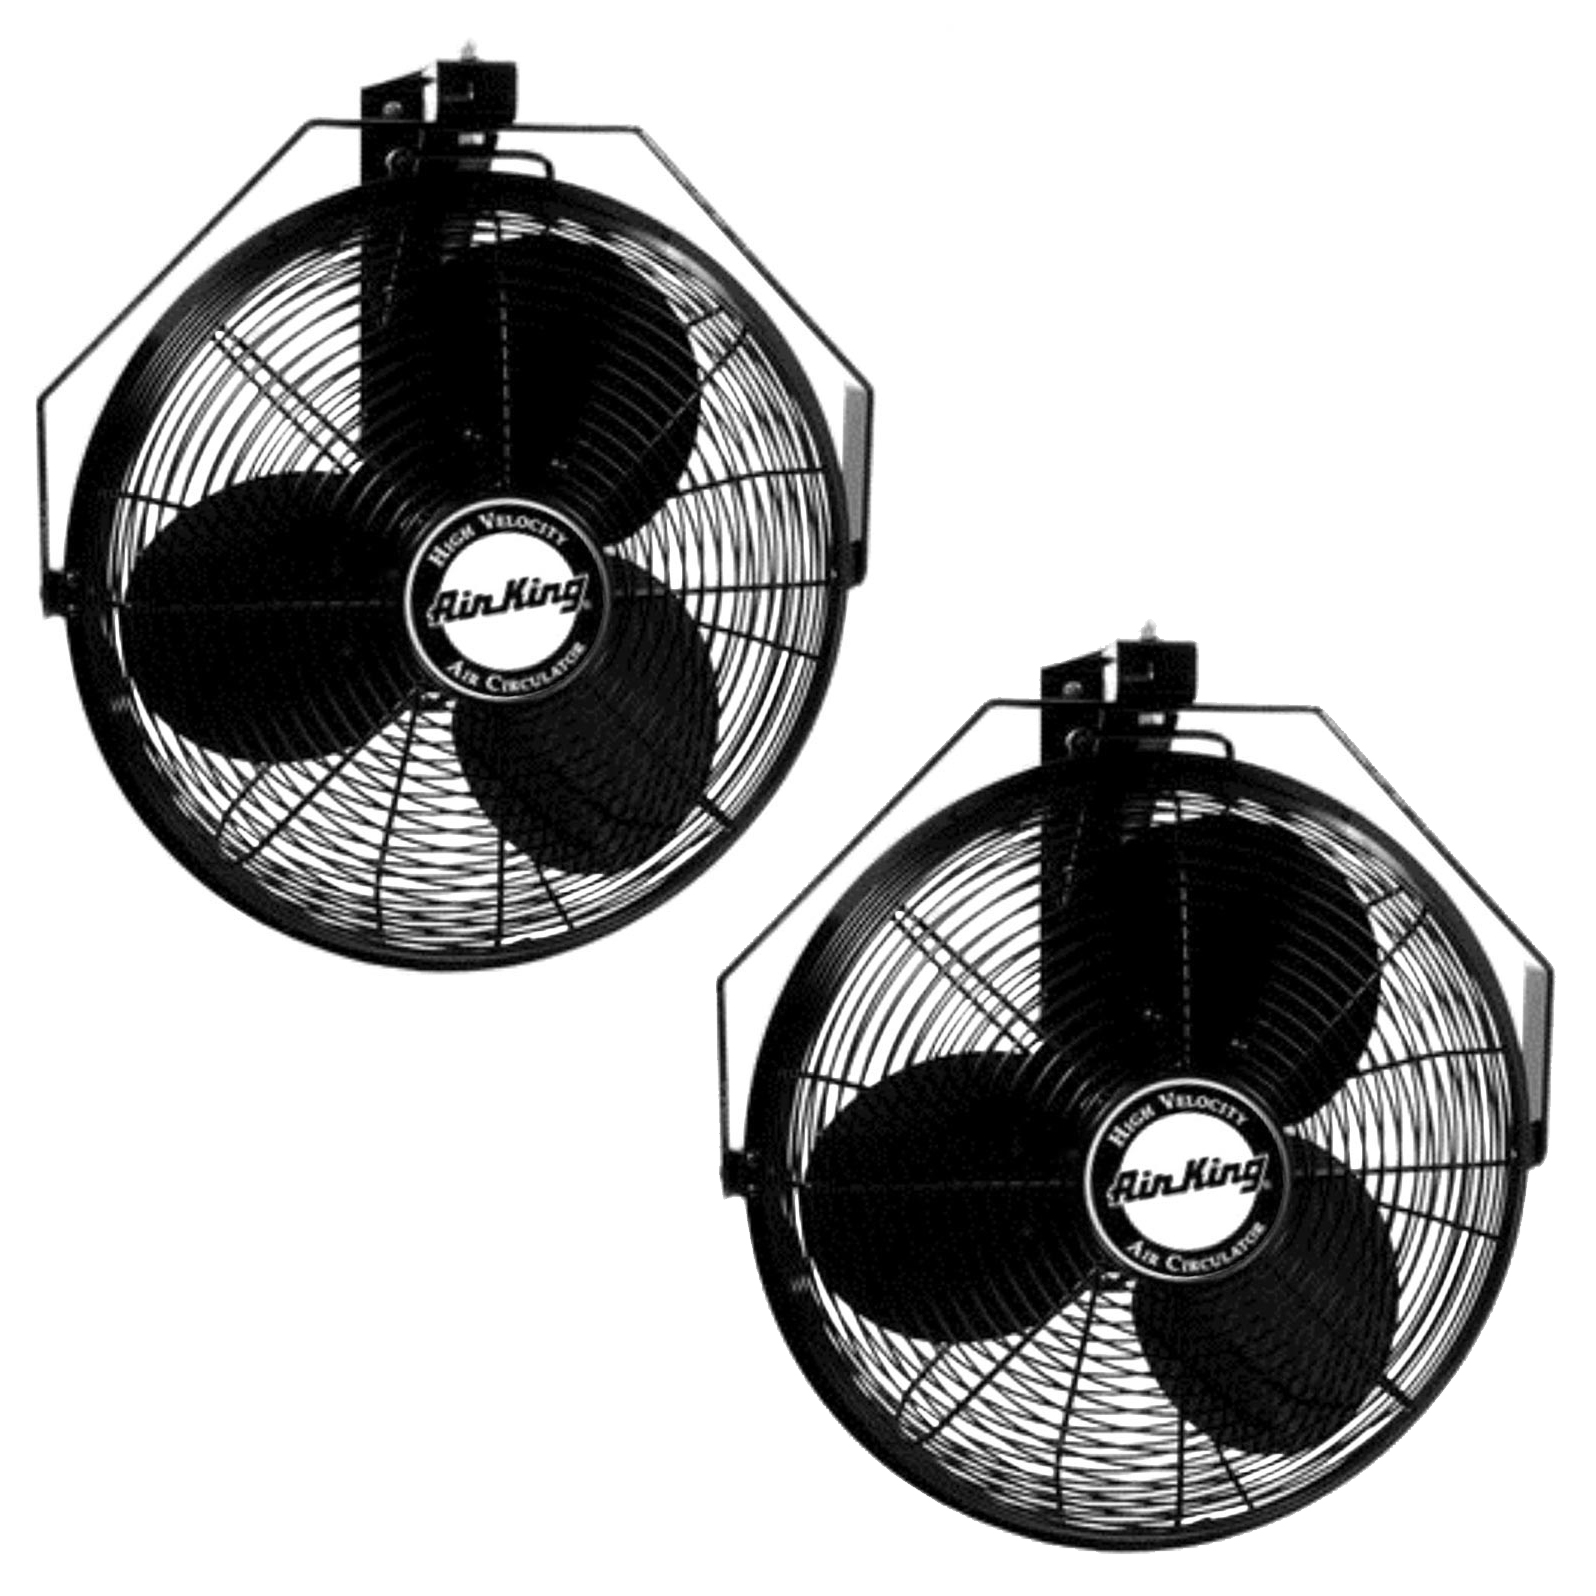 Air King 18 Inch 1/6 HP Industrial Grade 3 Blade Wall Mounted Fan (2 Pack)